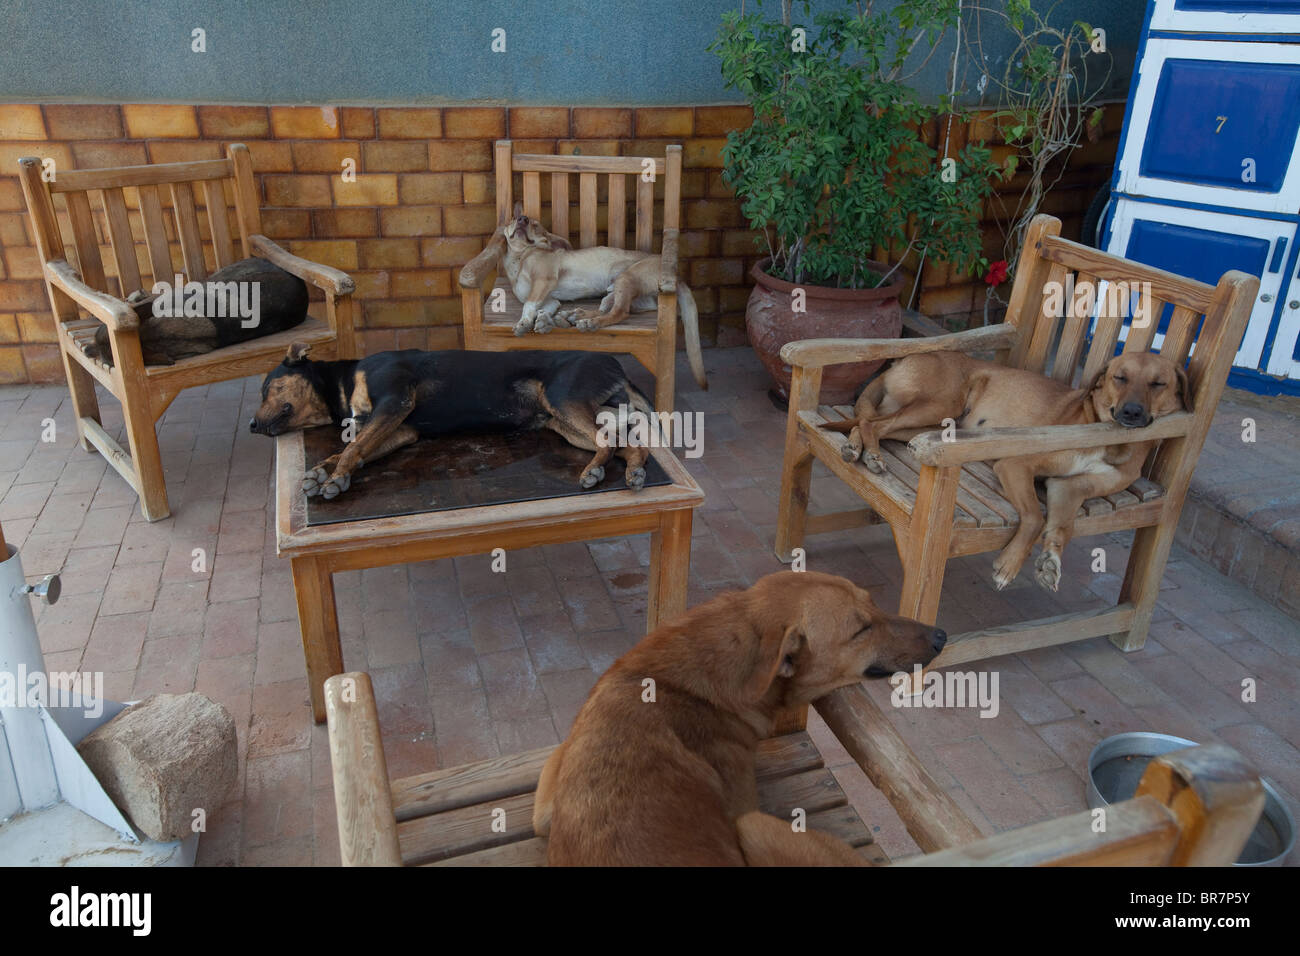 Dogs sleeping on chairs around a table, Dahab, Egypt - Stock Image